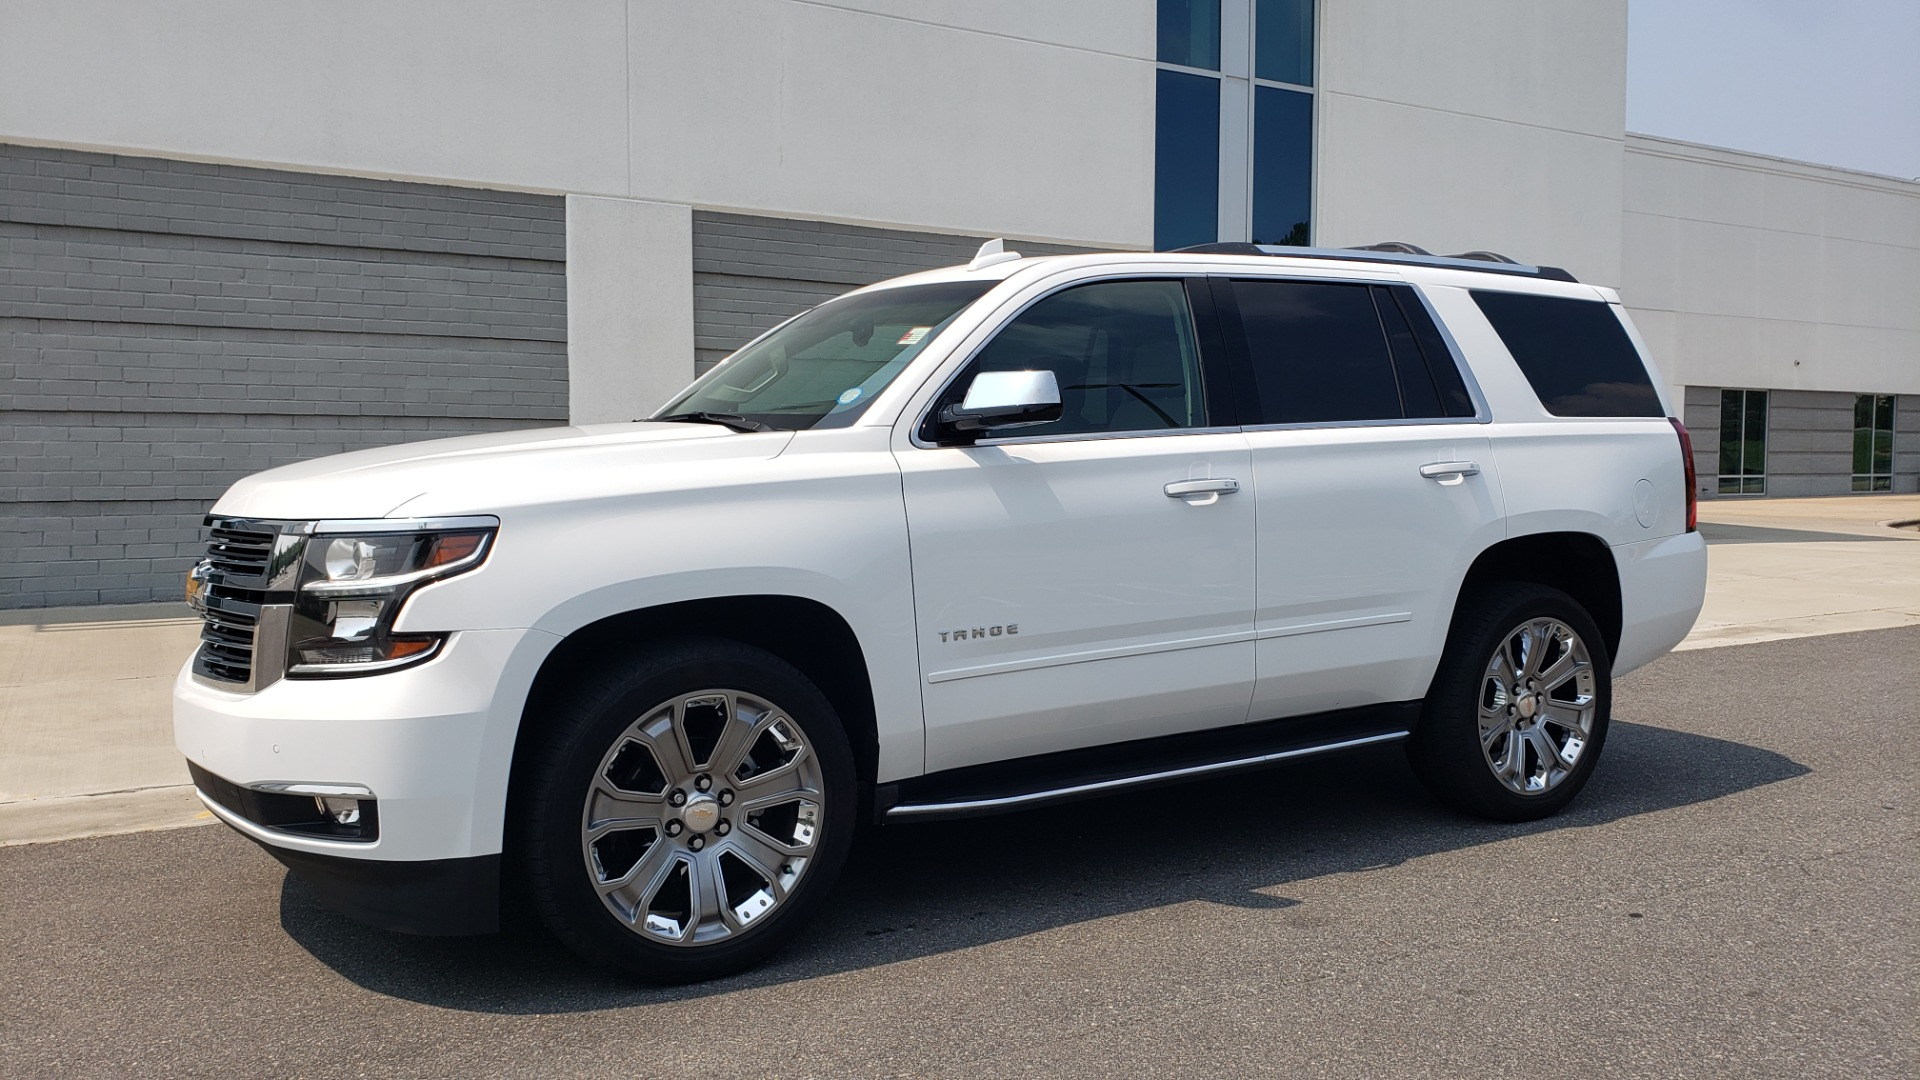 Used 2018 Chevrolet TAHOE PREMIER 4WD / NAV / SUNROOF / BOSE / 3-ROW / HUD / REARVIEW for sale $63,995 at Formula Imports in Charlotte NC 28227 4